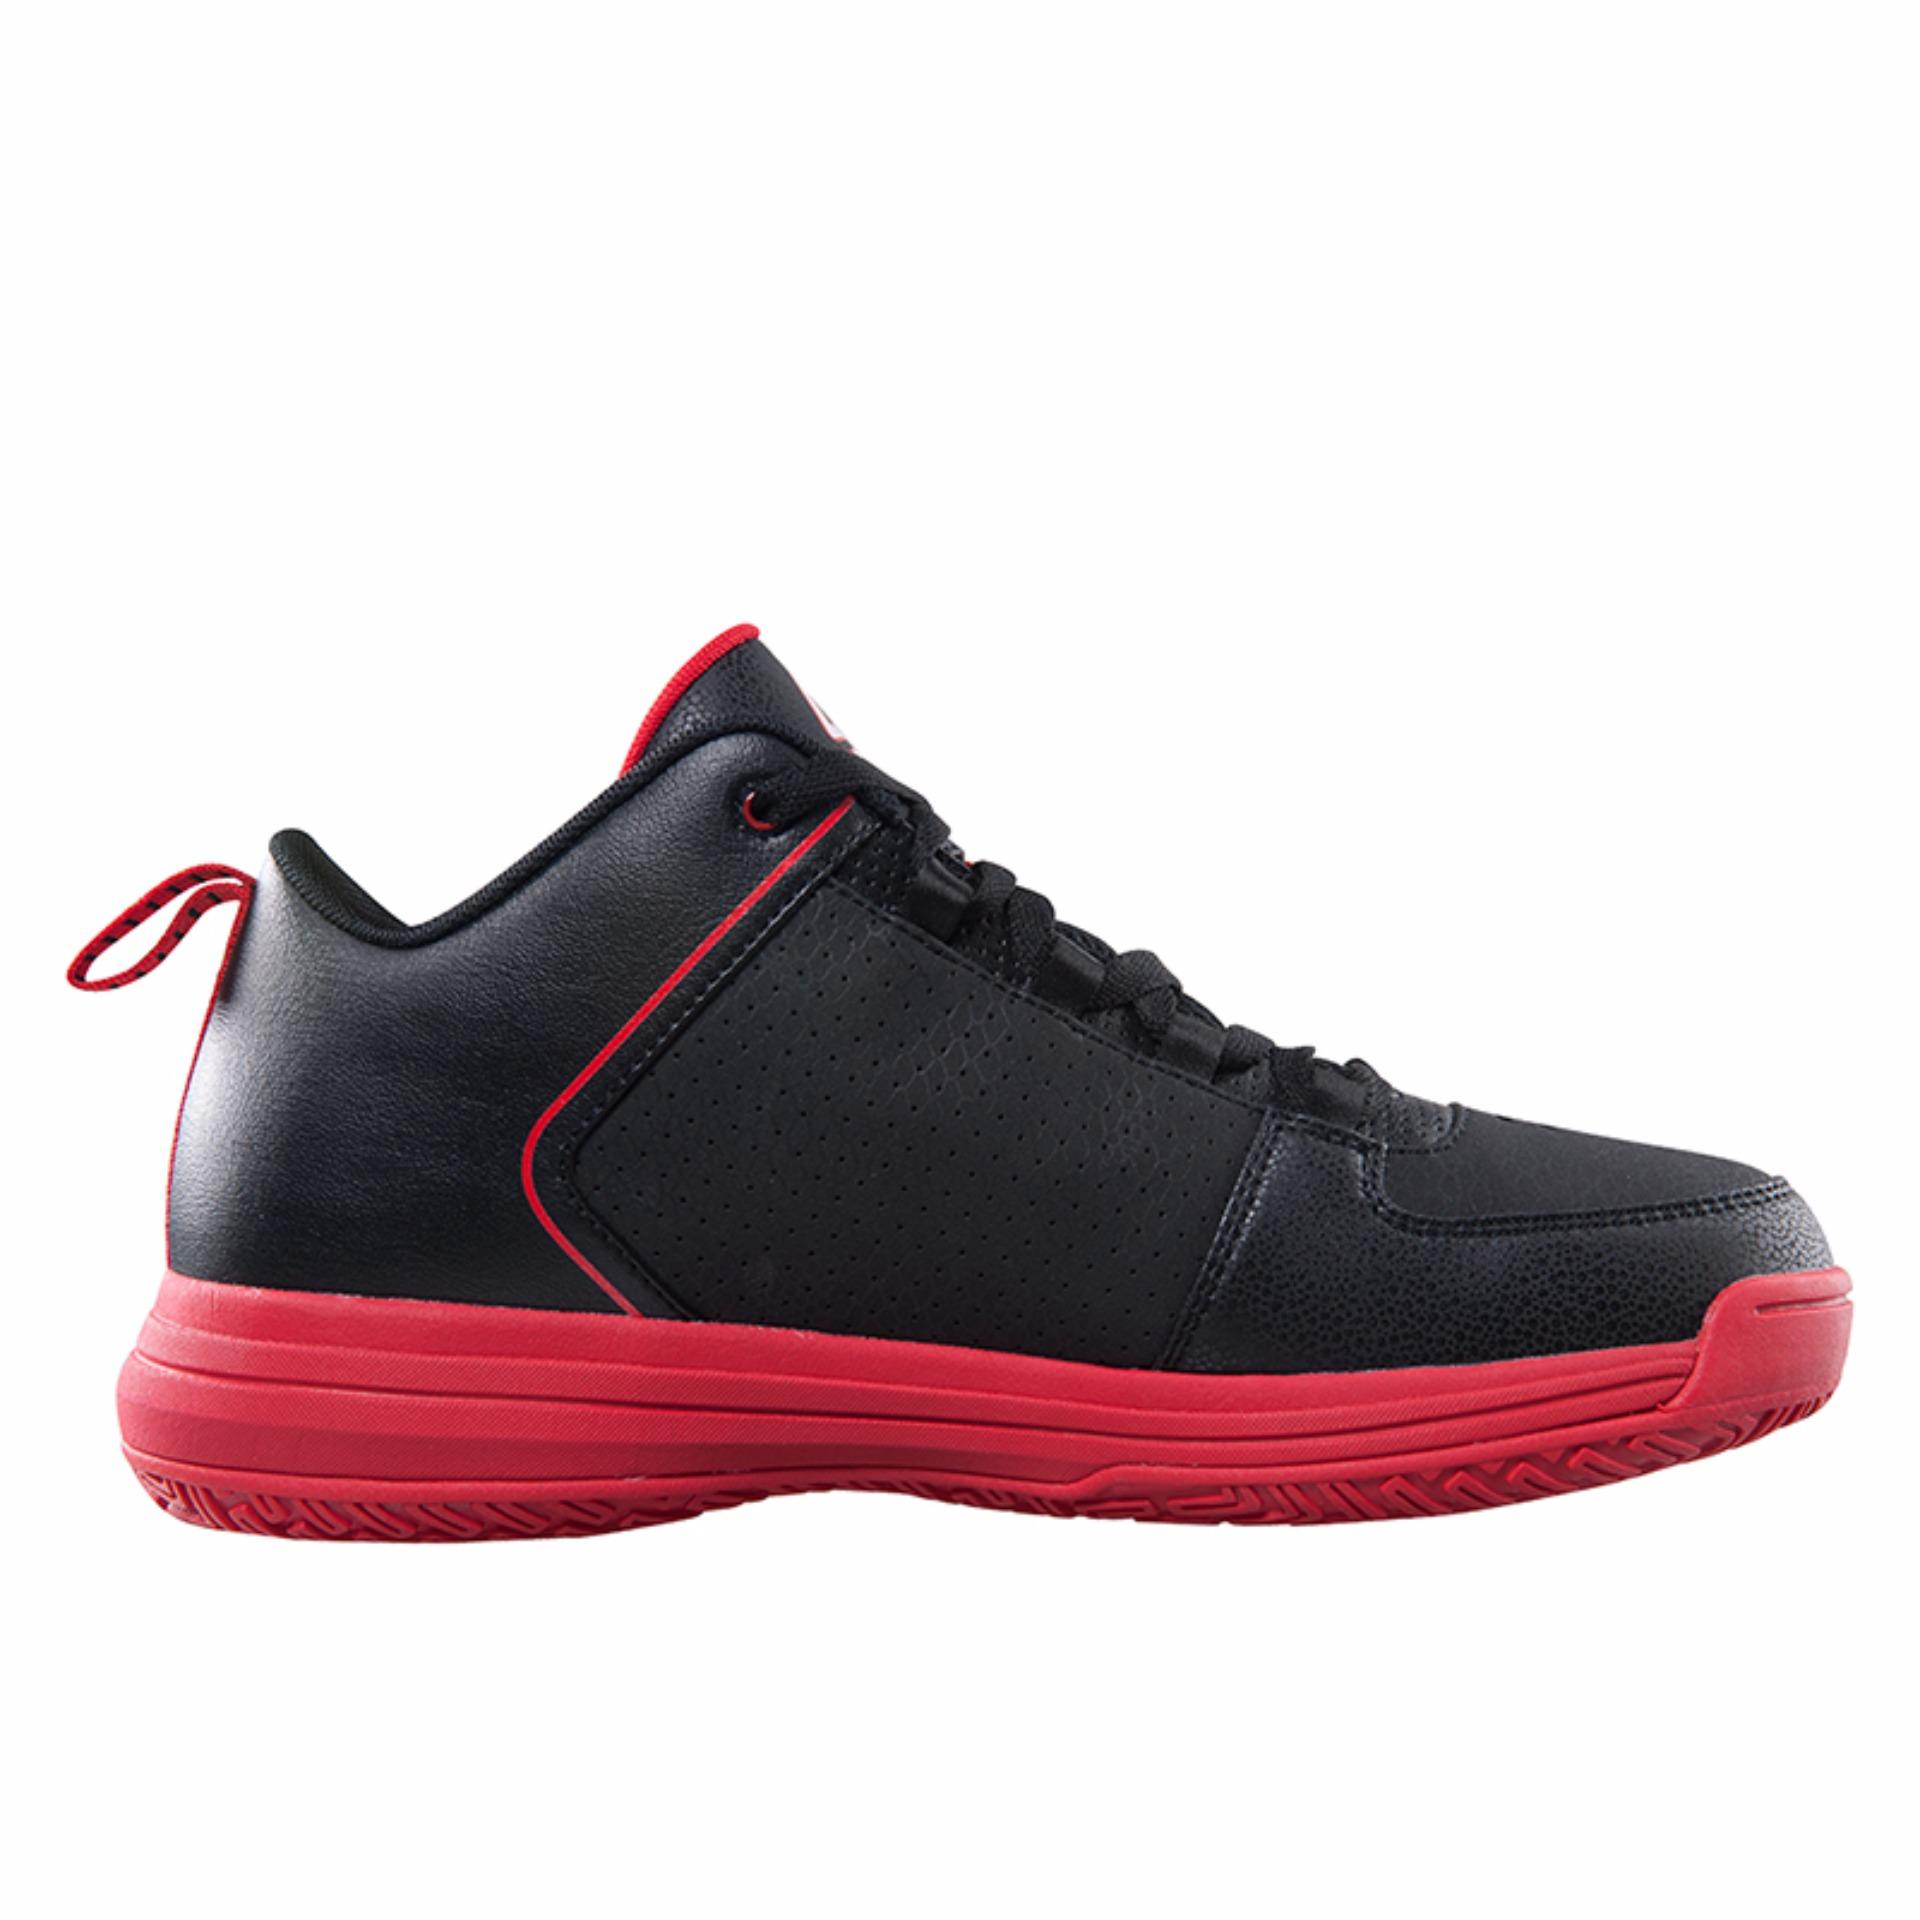 Peak E313021a Crossover I Edition Men Outdoor Basketballshoes Black Sepatu Basket Authentic Chalenger Real Sneakers E51041a Iii Red